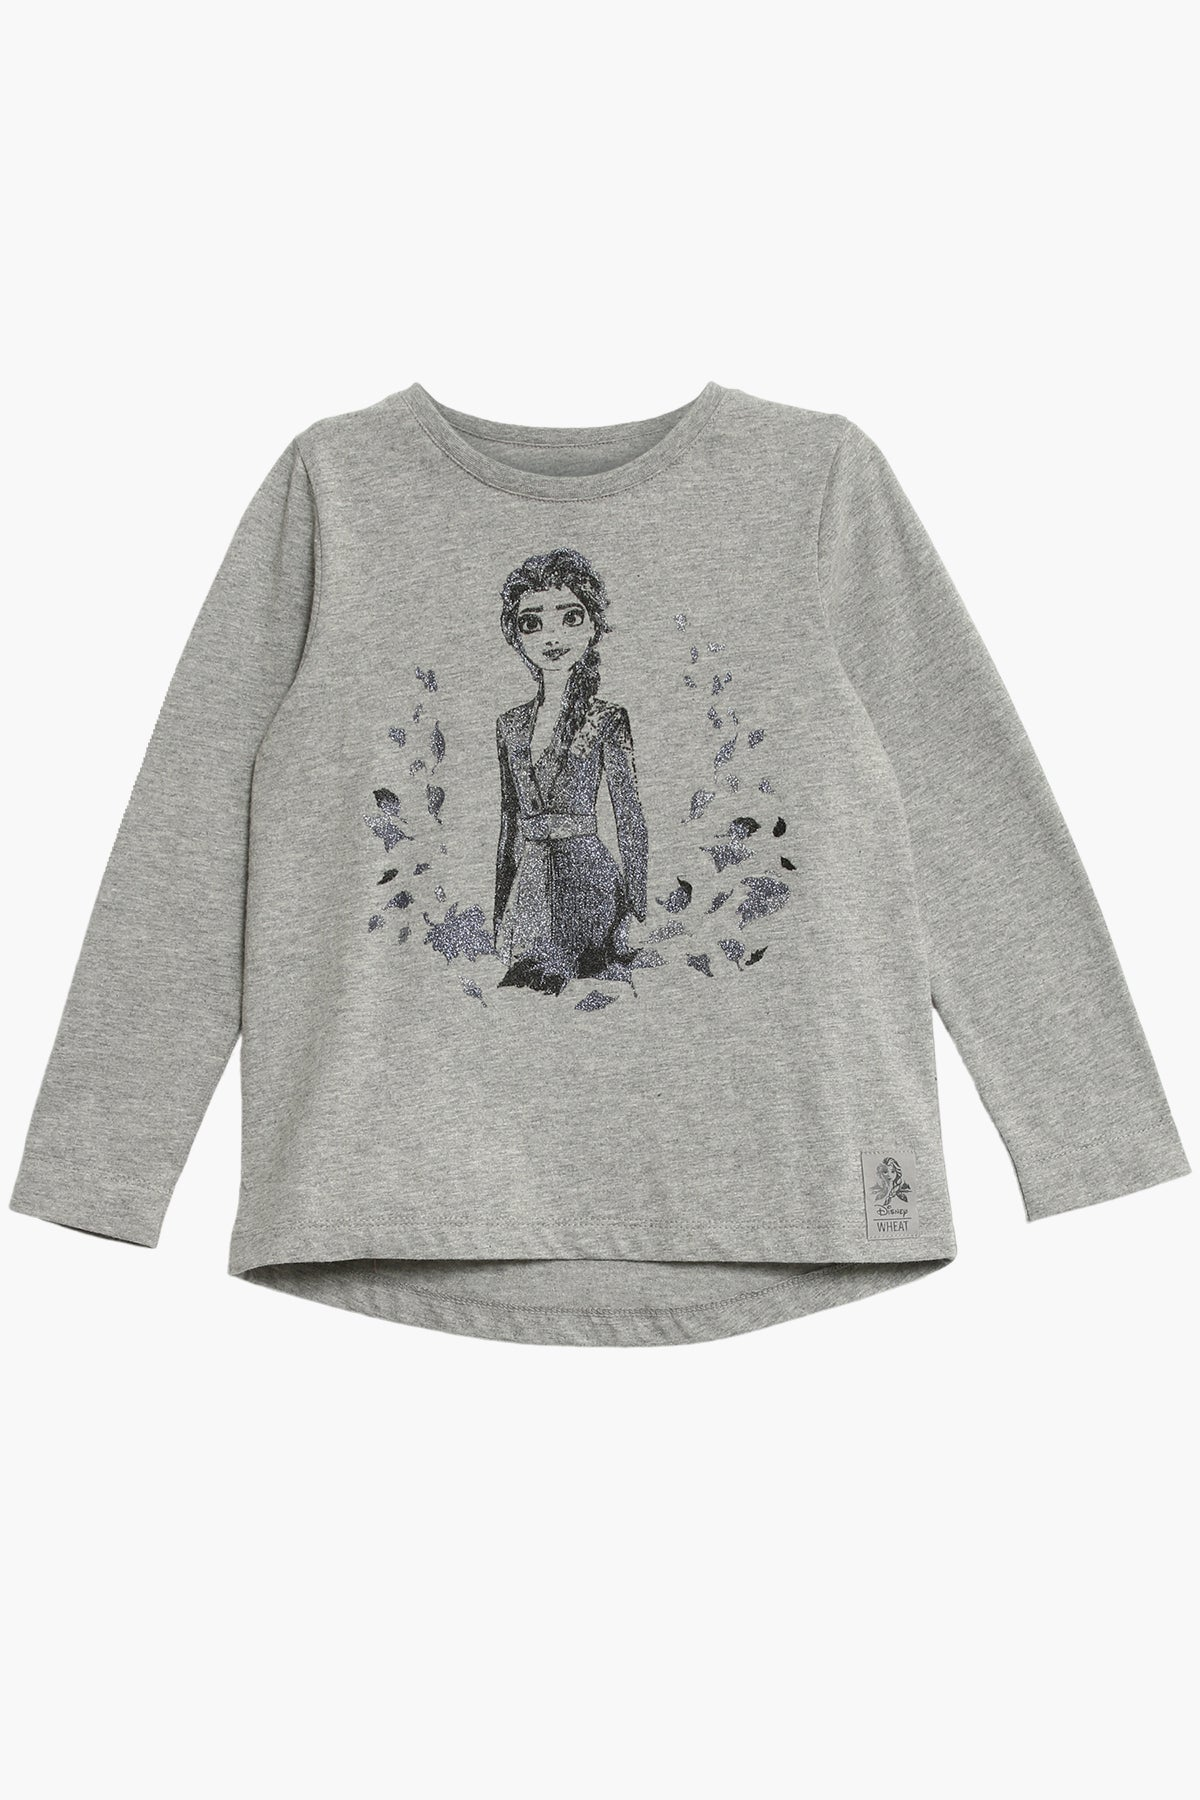 Wheat Disney Frozen Elsa Girls T-Shirt